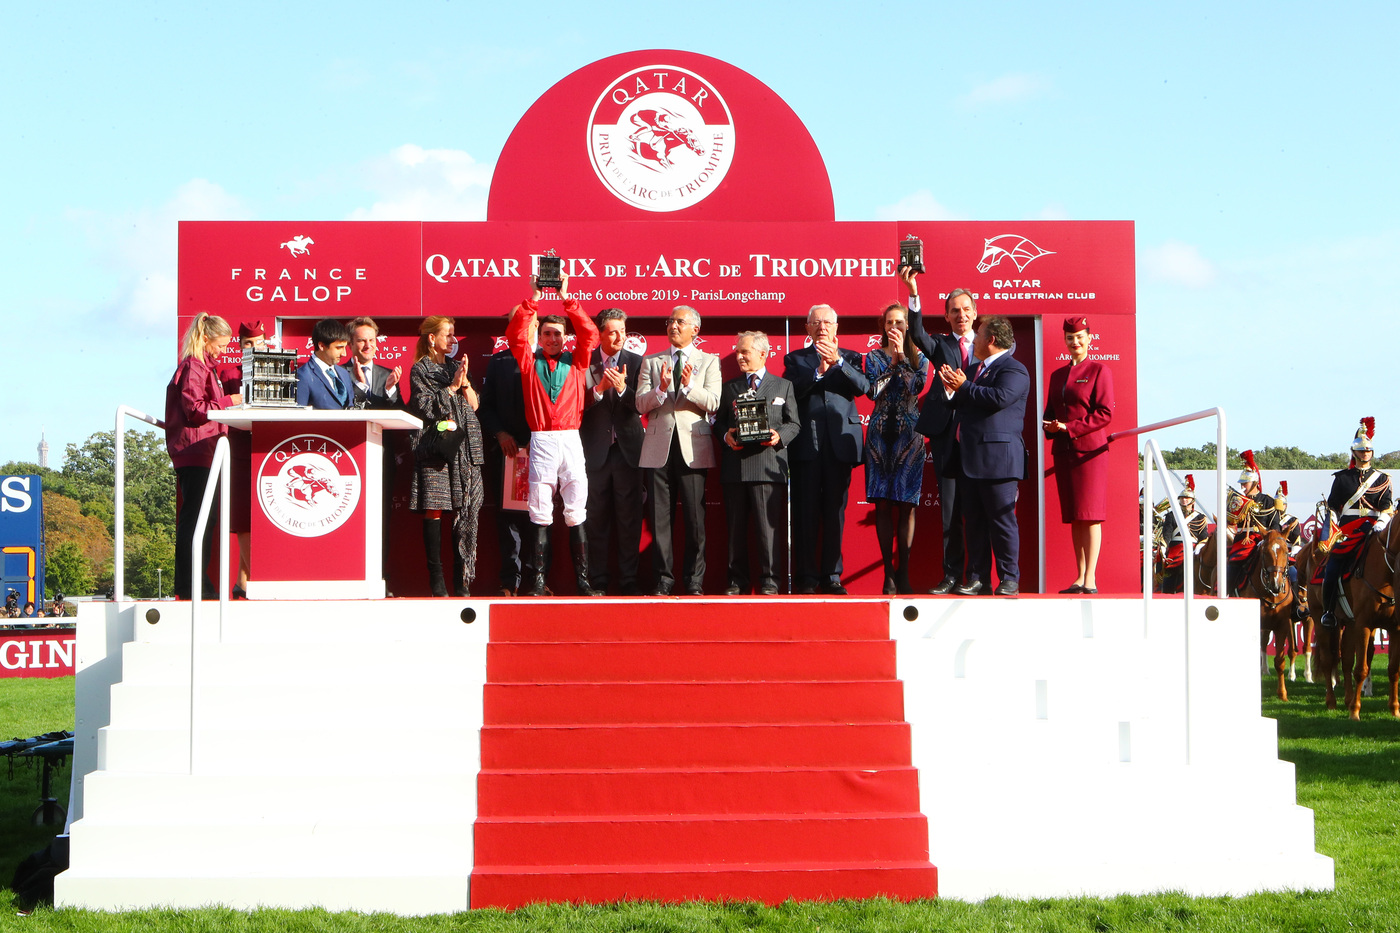 Longines Flat Racing Event: Waldgeist wins the 98th edition of the Qatar Prix de l'Arc de Triomphe 3